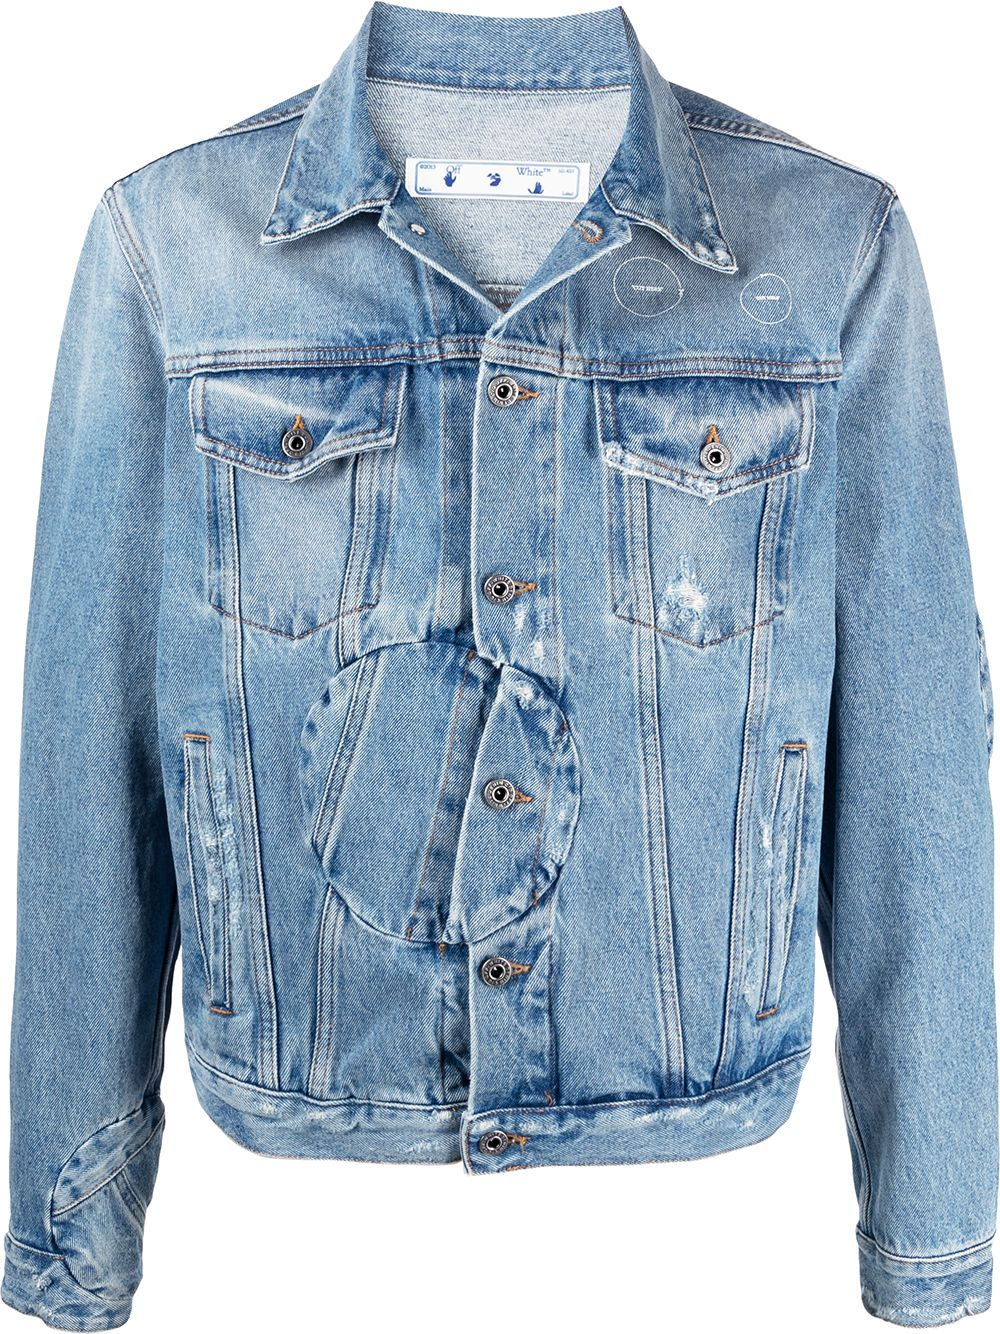 OFF-WHITE Twist Arrow Denim Jacket Blue - Maison De Fashion